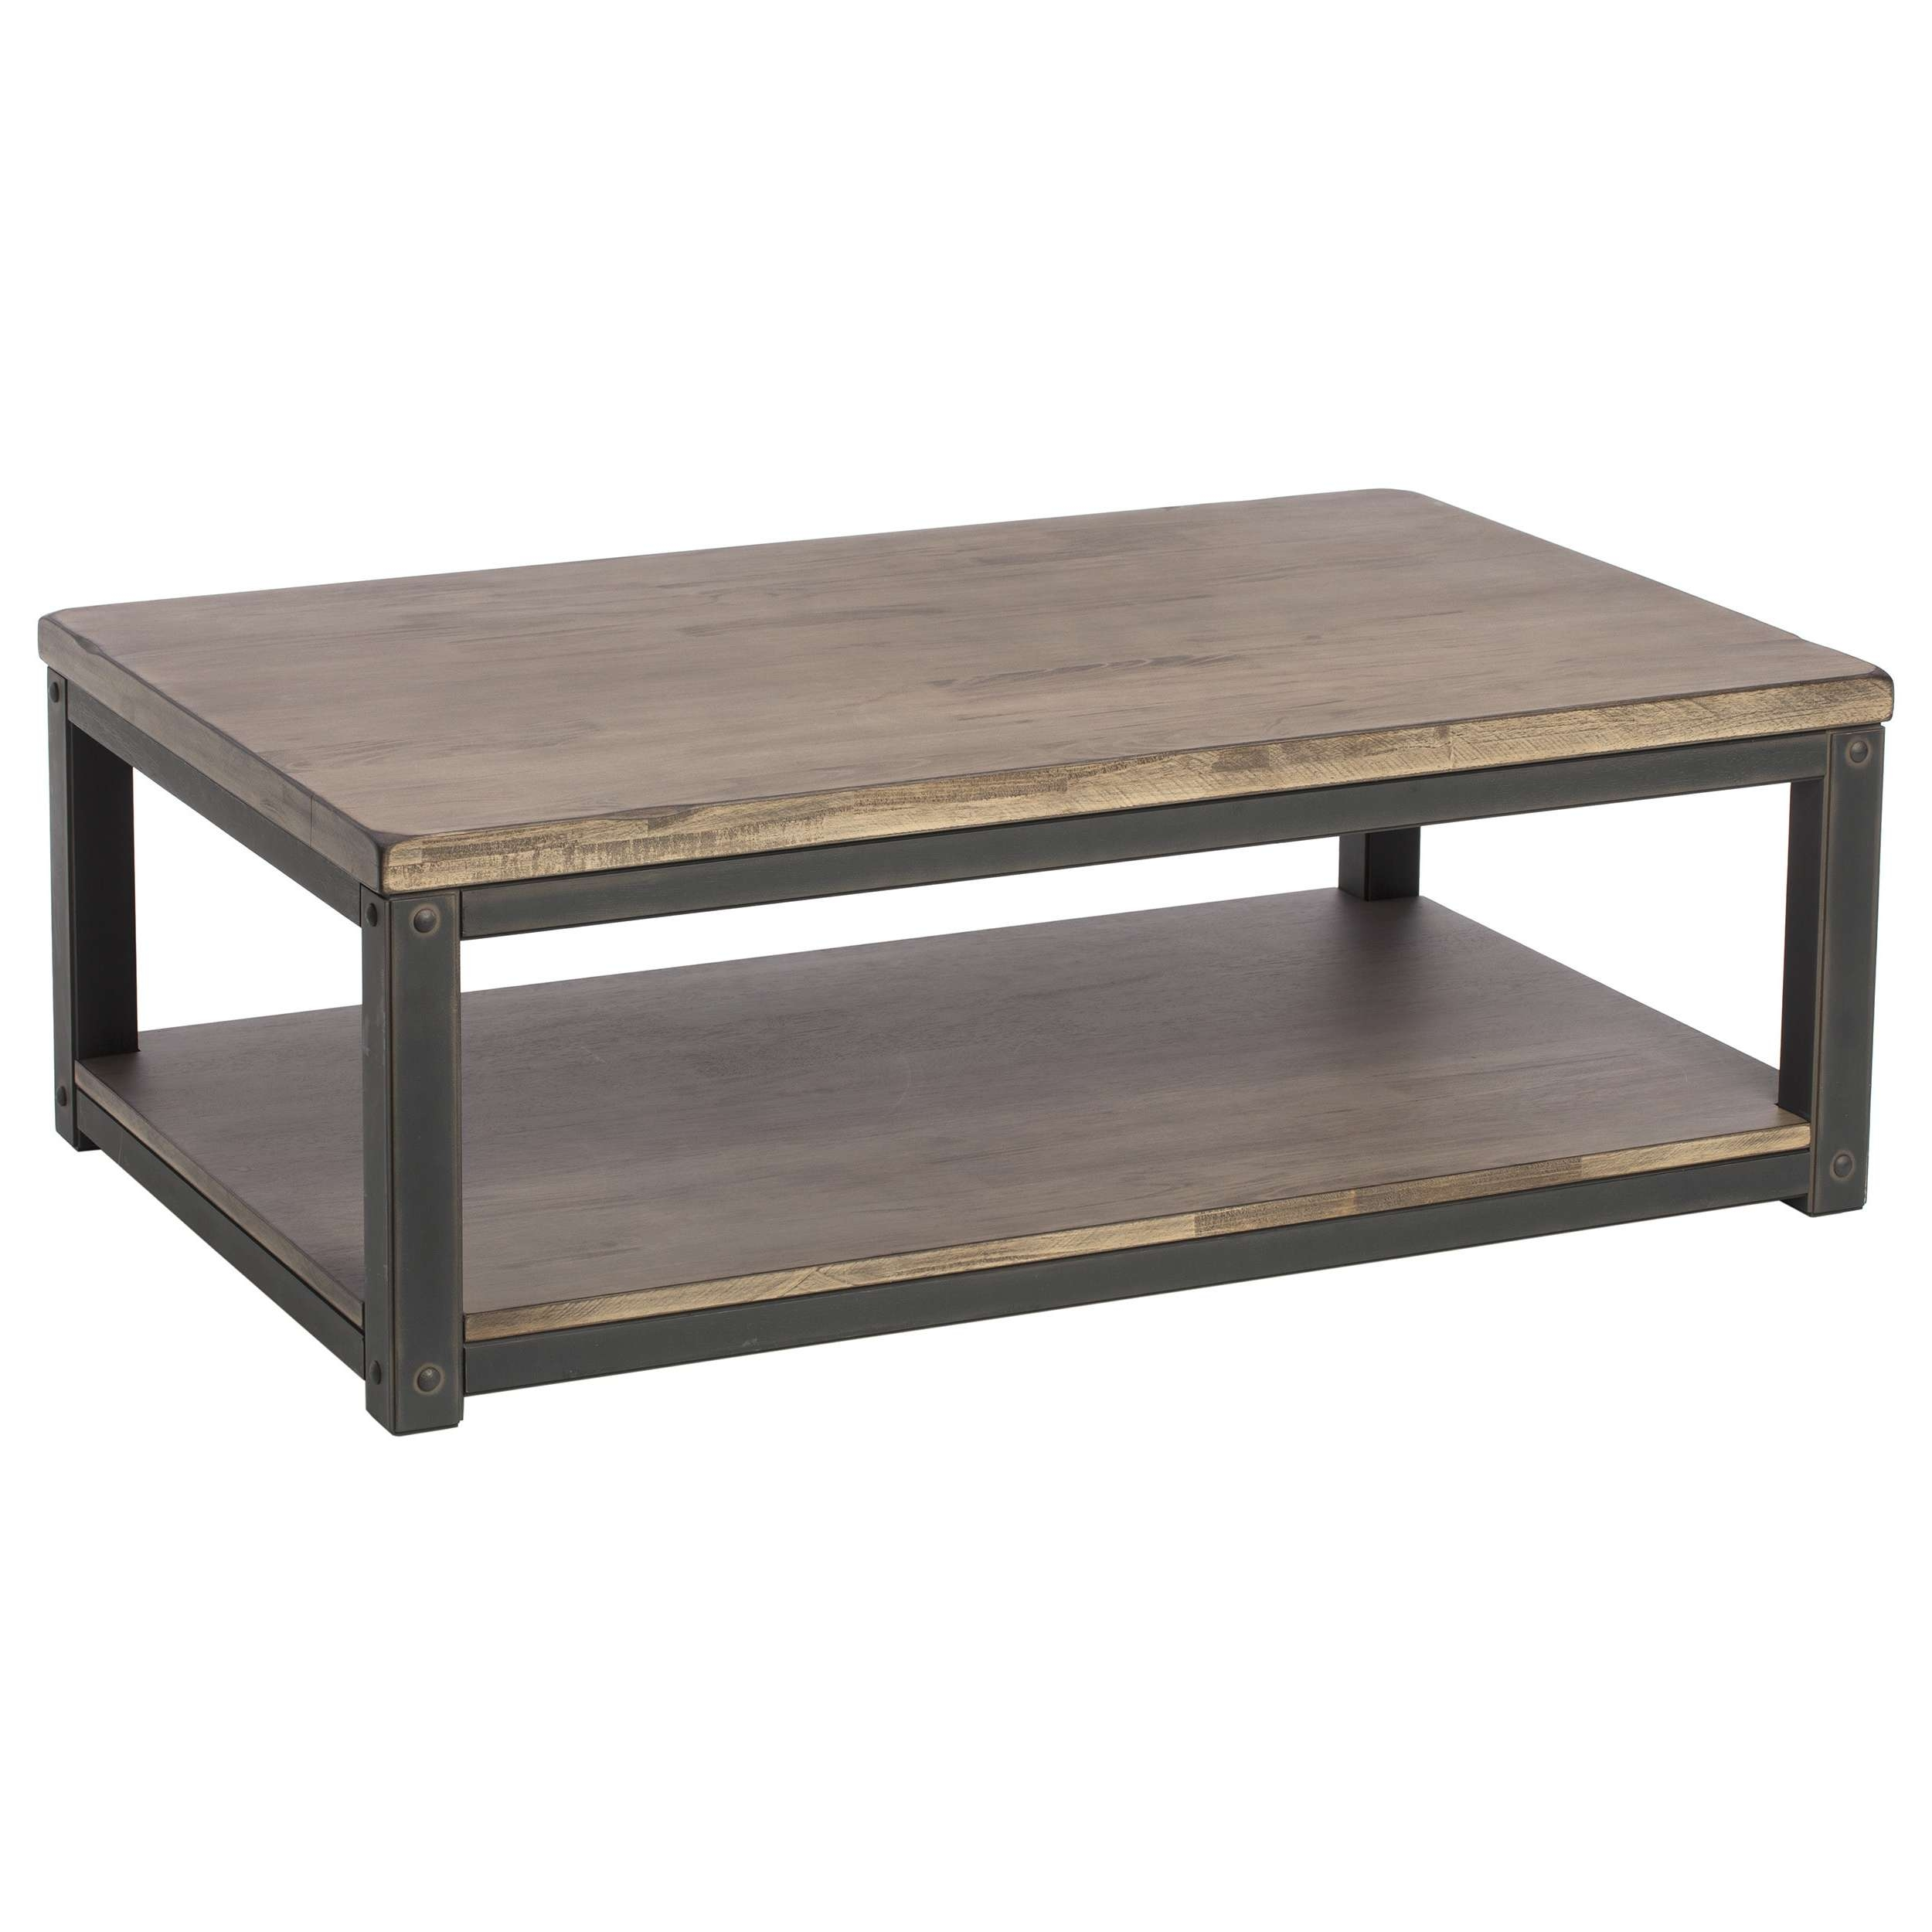 Trendy Heritage Coffee Tables With Regard To Heritage Coffee Table – Free Shipping Today – Overstock –  (View 16 of 20)